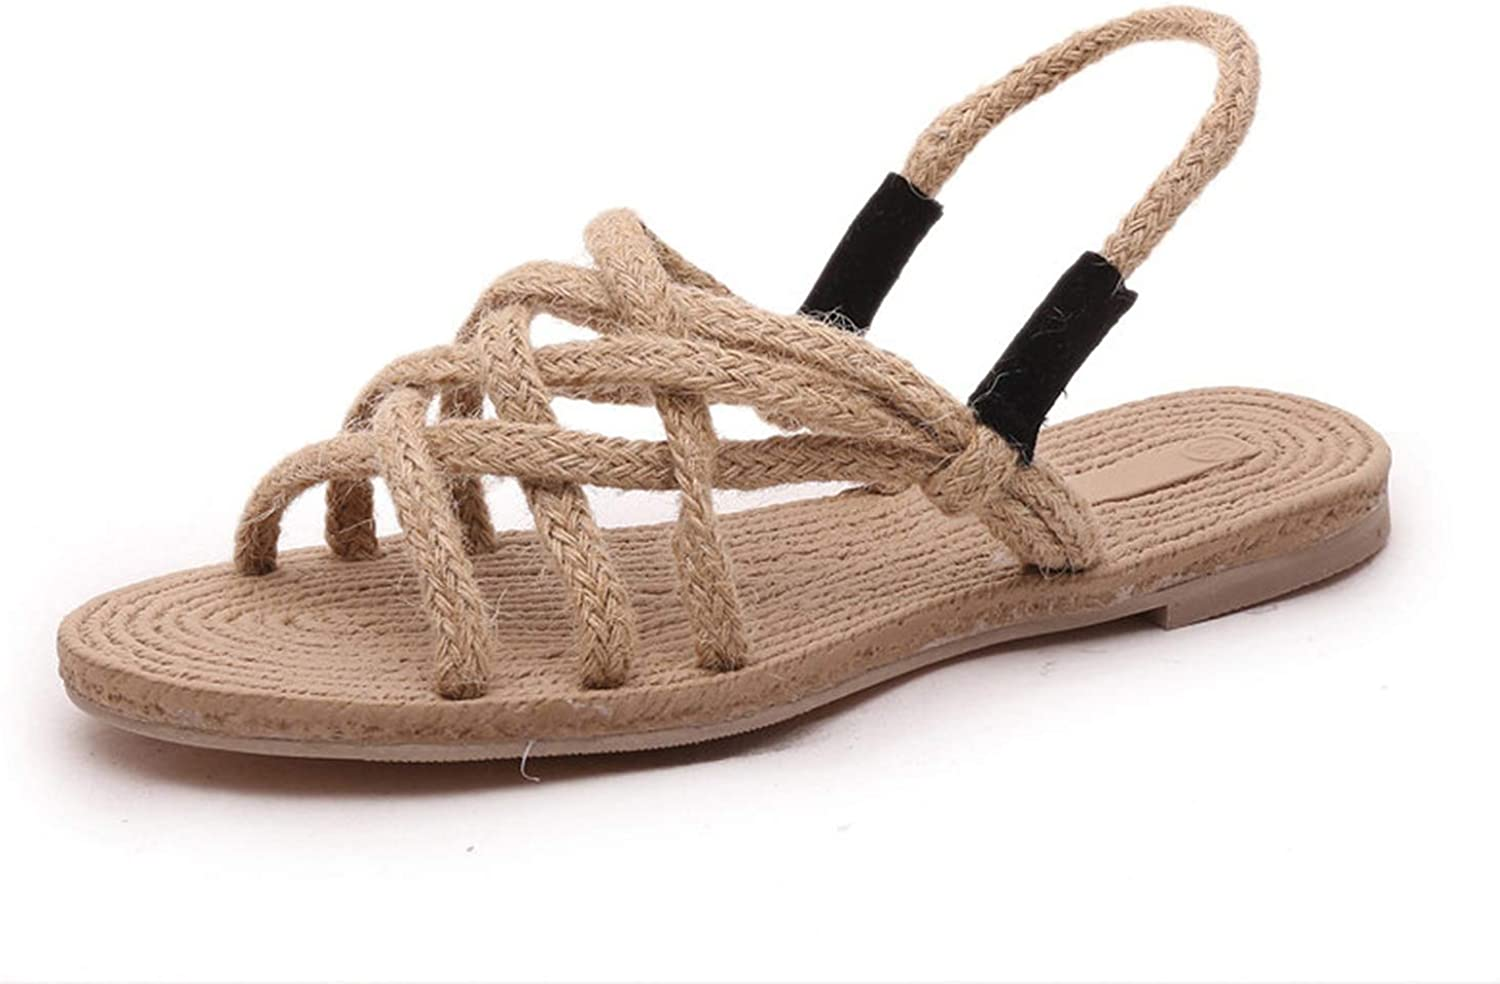 Cane shoes New Summer Women Sandals Casual Straw Rope Sandals Fashion Ladies Open Toe Flats